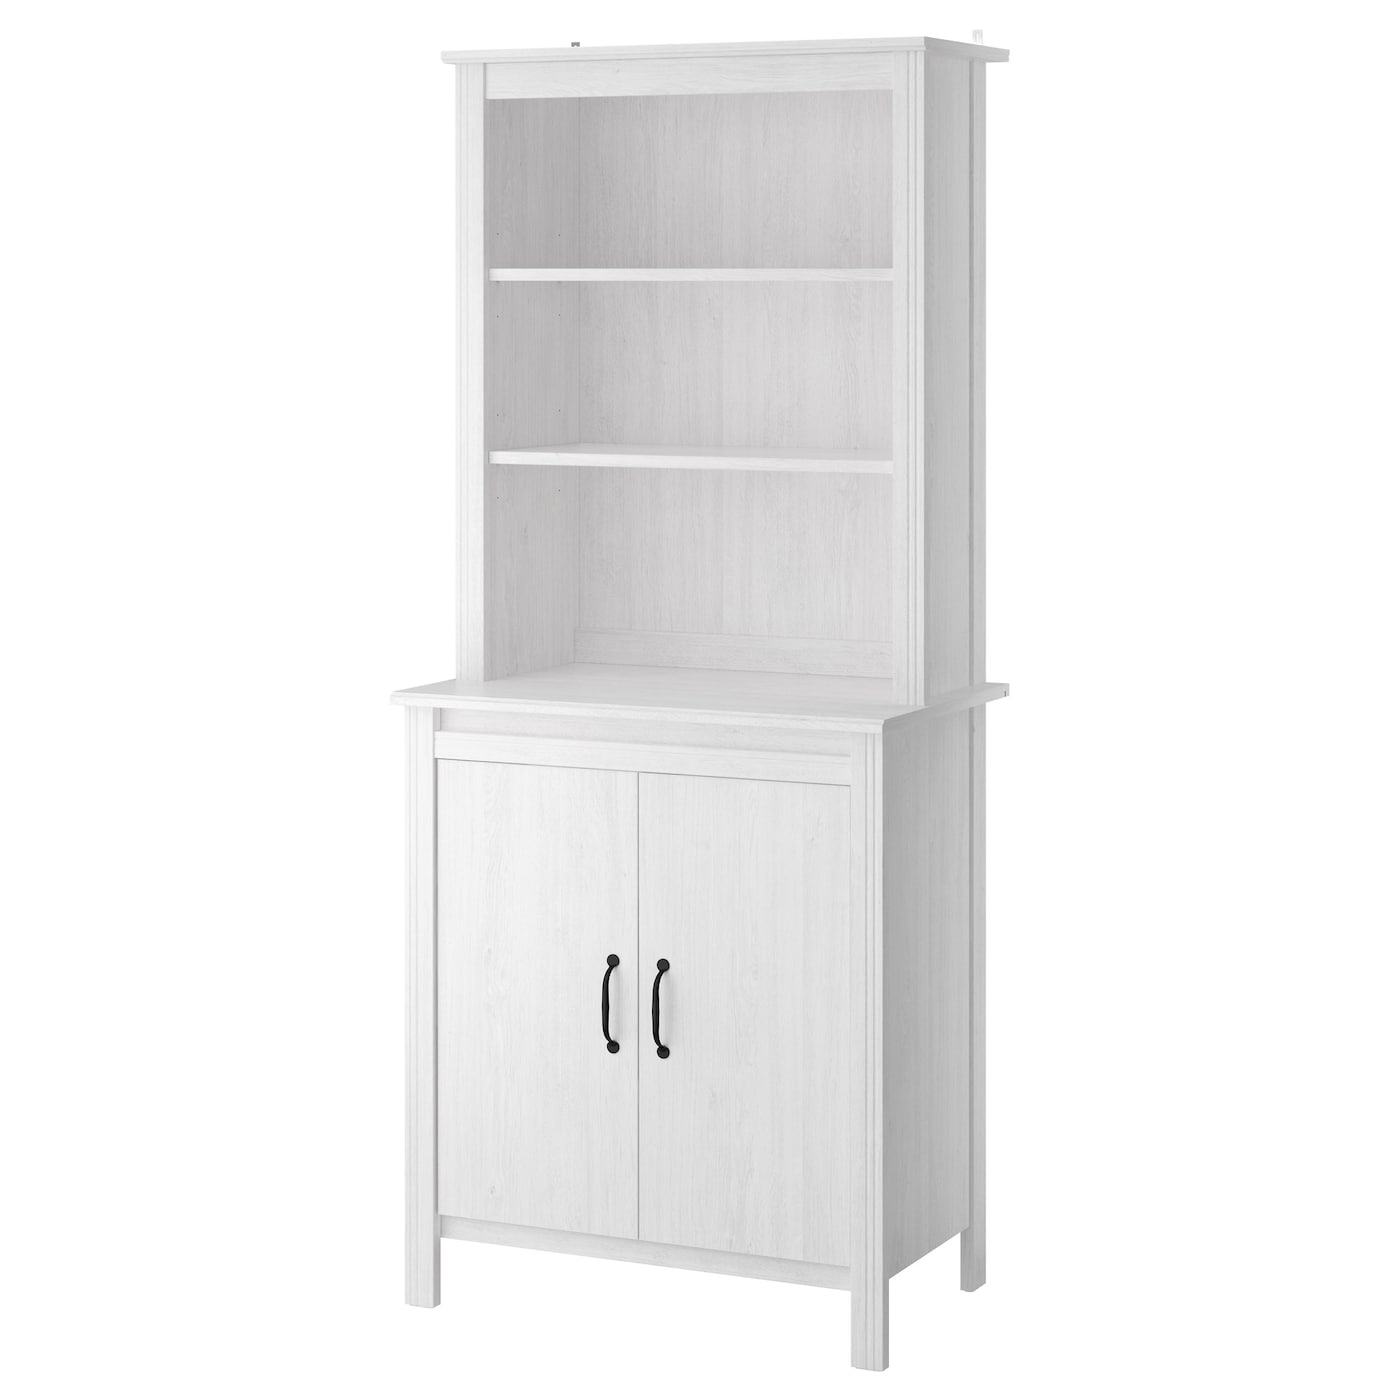 brusali high cabinet with door white 80x190 cm ikea. Black Bedroom Furniture Sets. Home Design Ideas